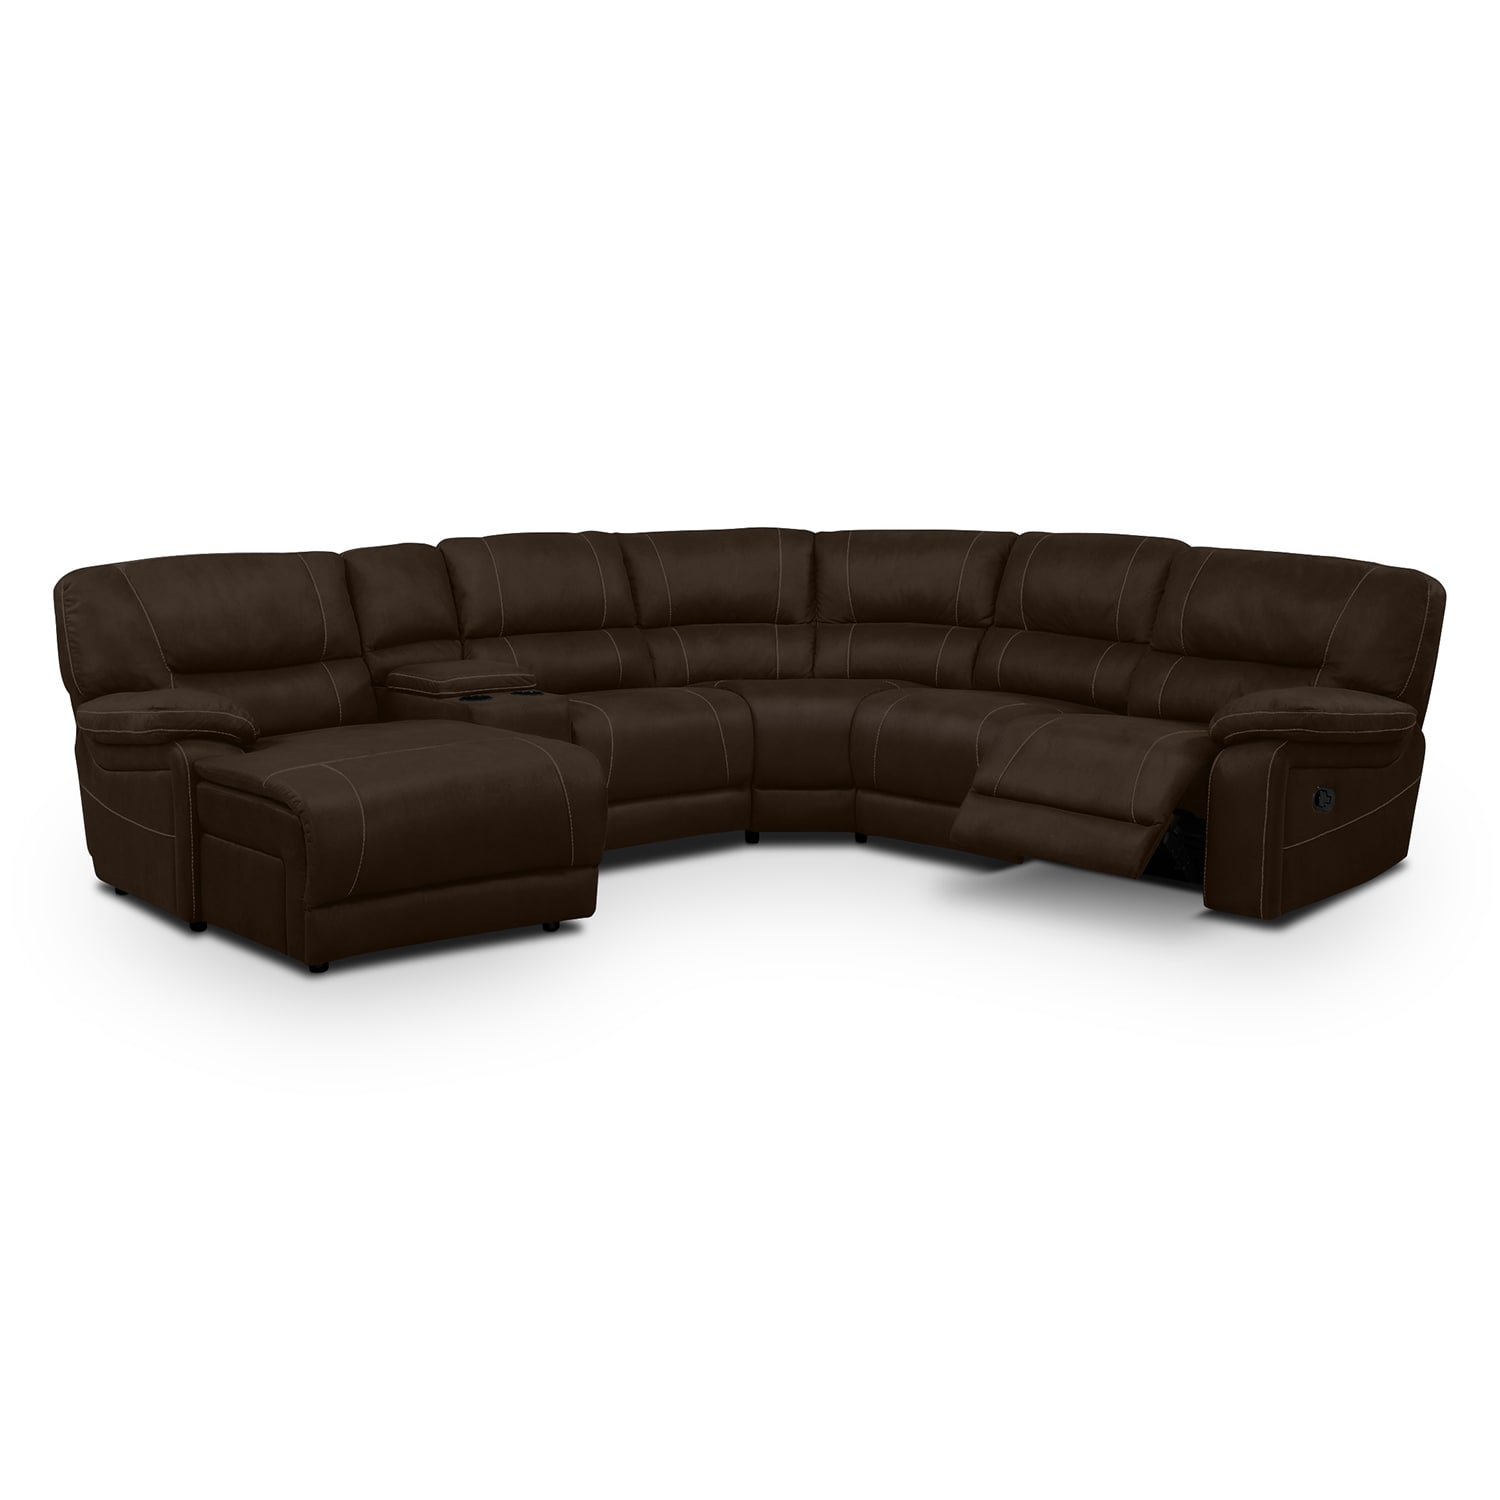 Living Room Furniture - Wyoming Saddle 5 Pc. Reclining Sectional (Reverse)